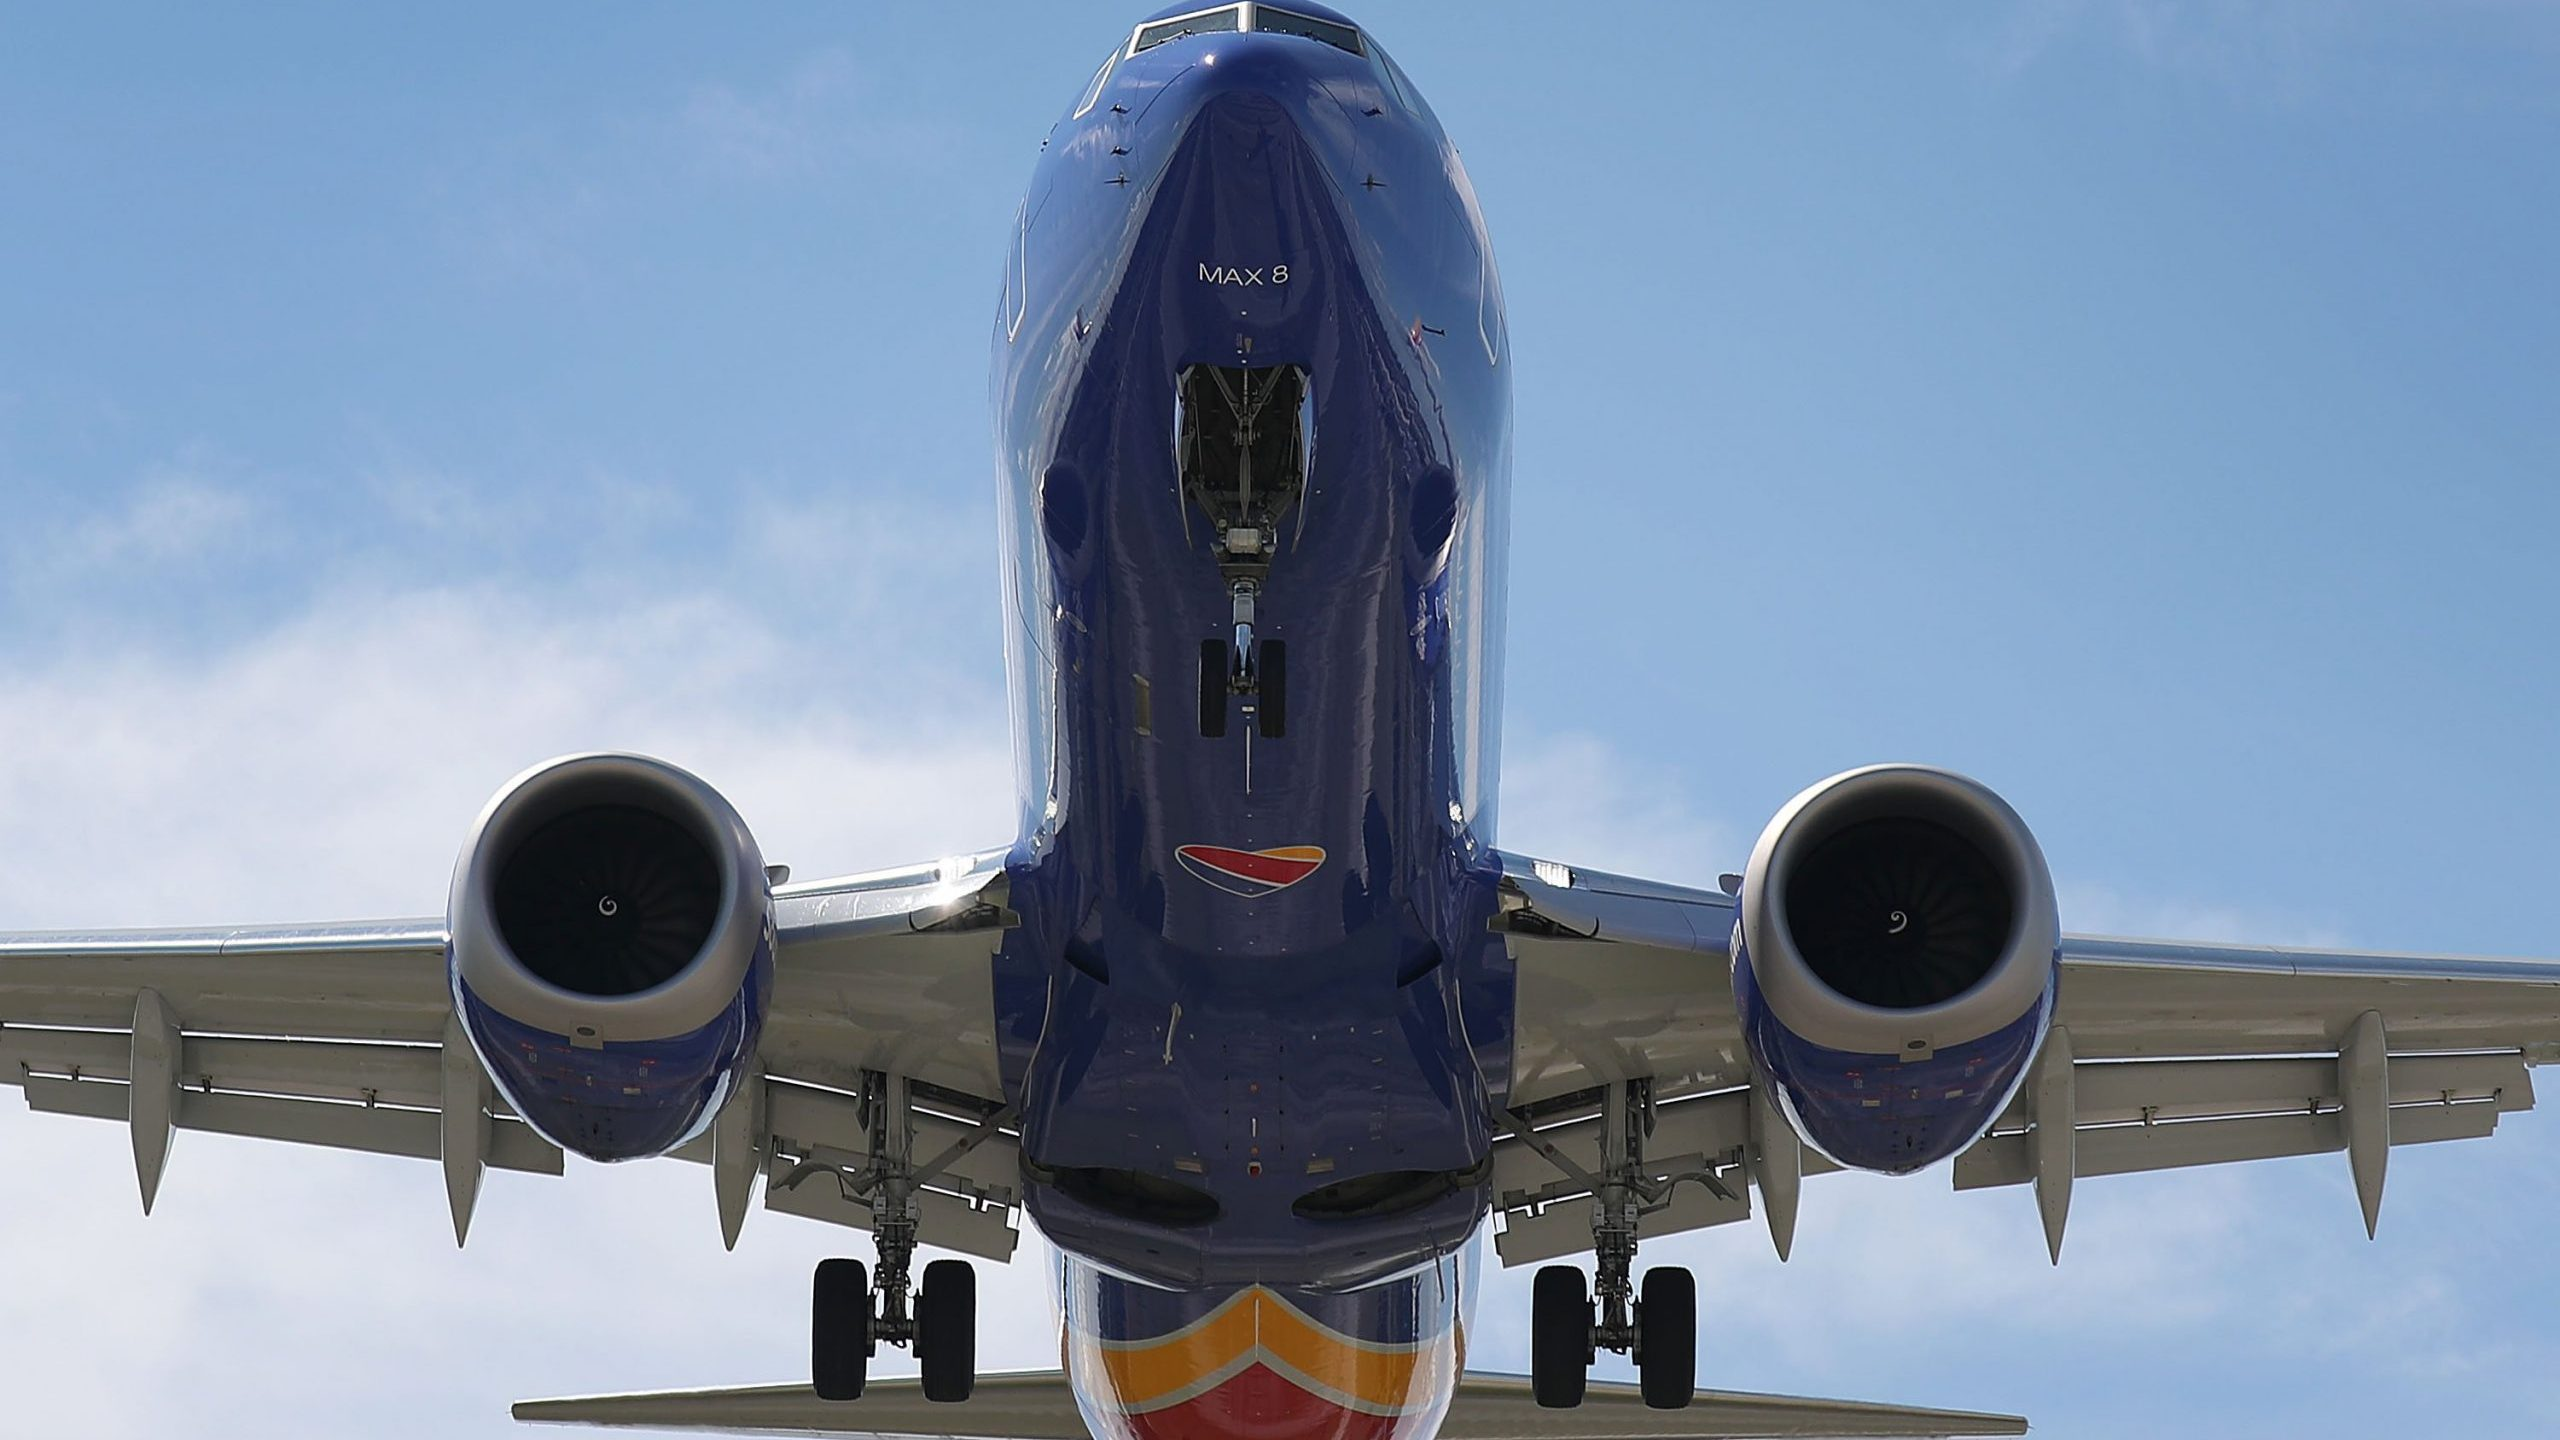 A Southwest Boeing 737 Max 8 enroute from Tampa prepares to land at Fort Lauderdale-Hollywood International Airport on March 11, 2019. (Credit: Joe Raedle/Getty Images)